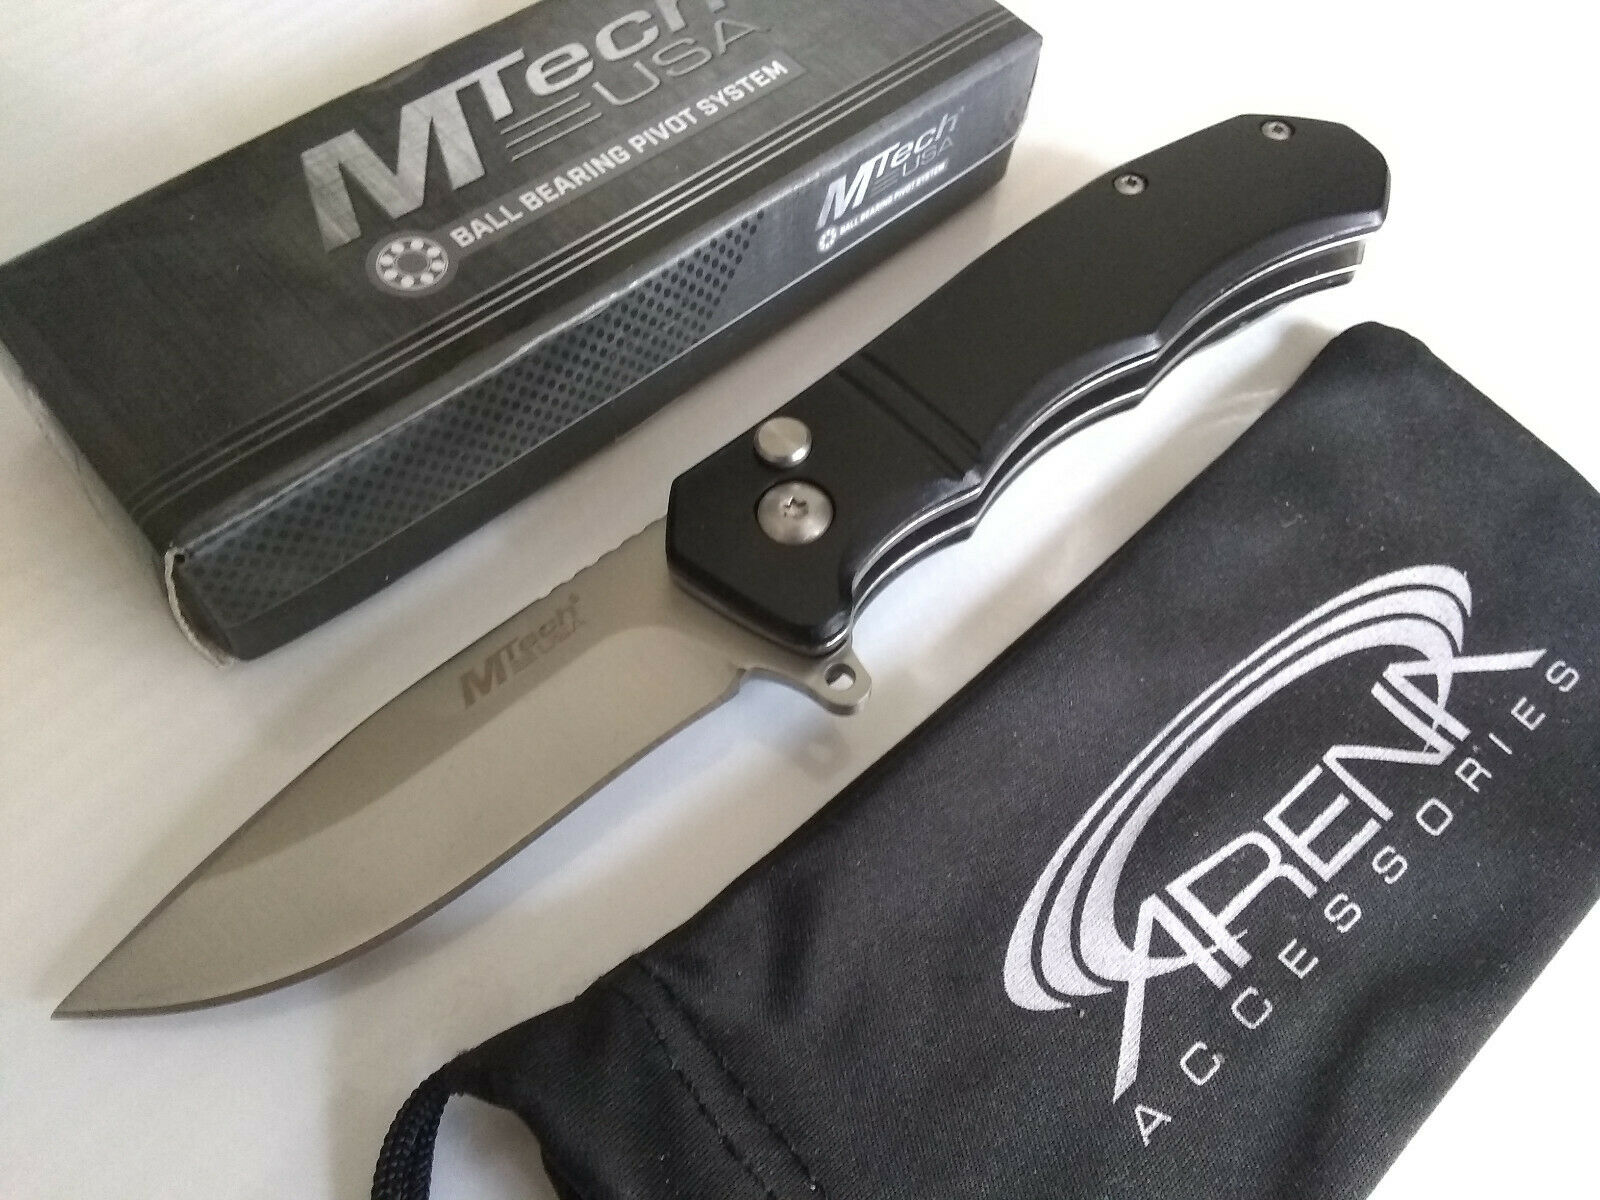 MTech Black Manual Button Lock Pocket Knife Drop Point Blade Anodized Aluminum Handle